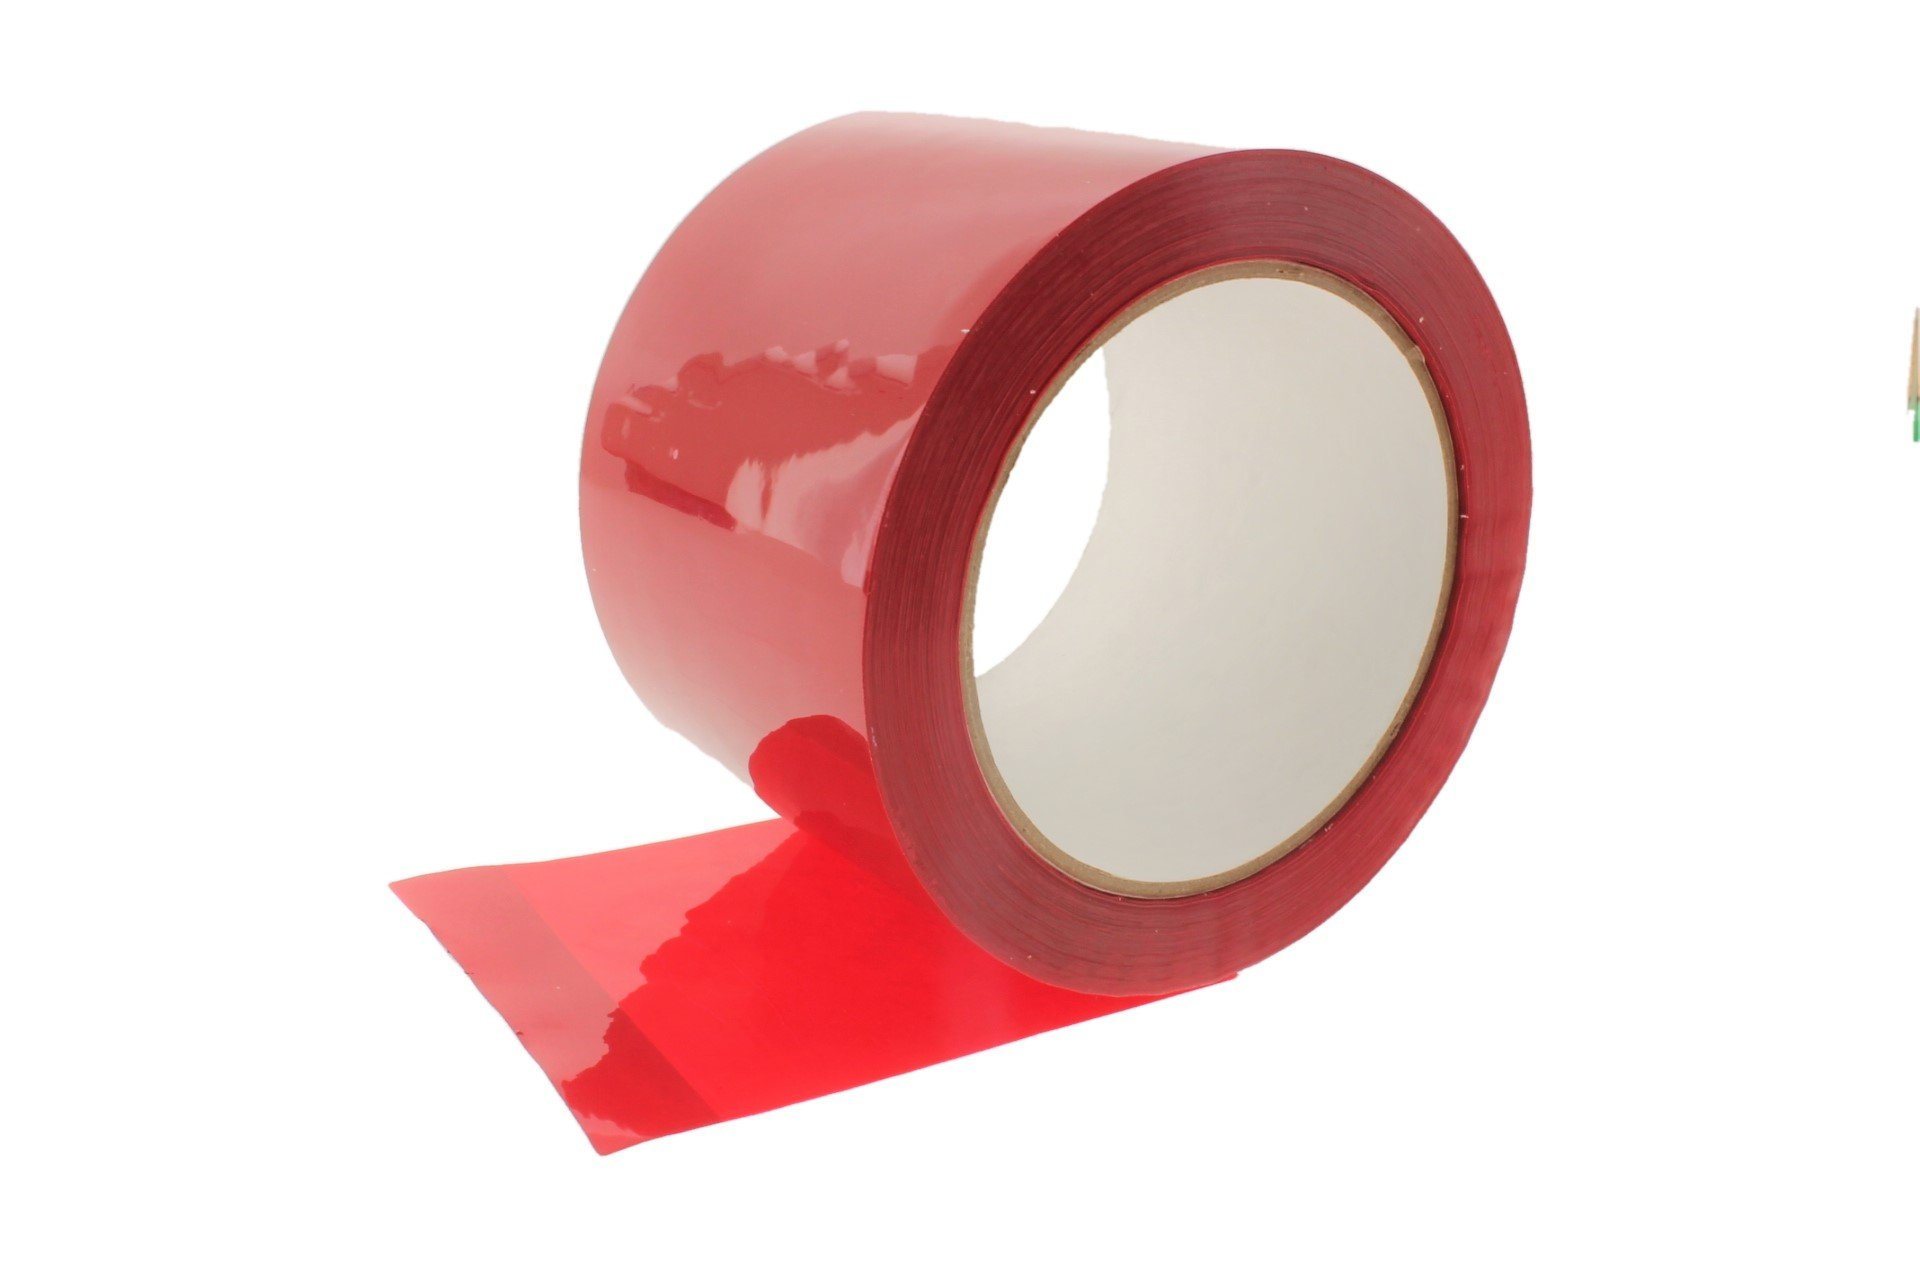 3pk 3'' in x 60 yd Red House Wrap Tape Sheathing Building Wrapping Housewrap Sheath Tape Insulation Seaming Plastic Sheets FOR Sealing TYVEK in Construction or Moisture Dust barrier Asbestos Abatement by TapeSmith (Image #2)